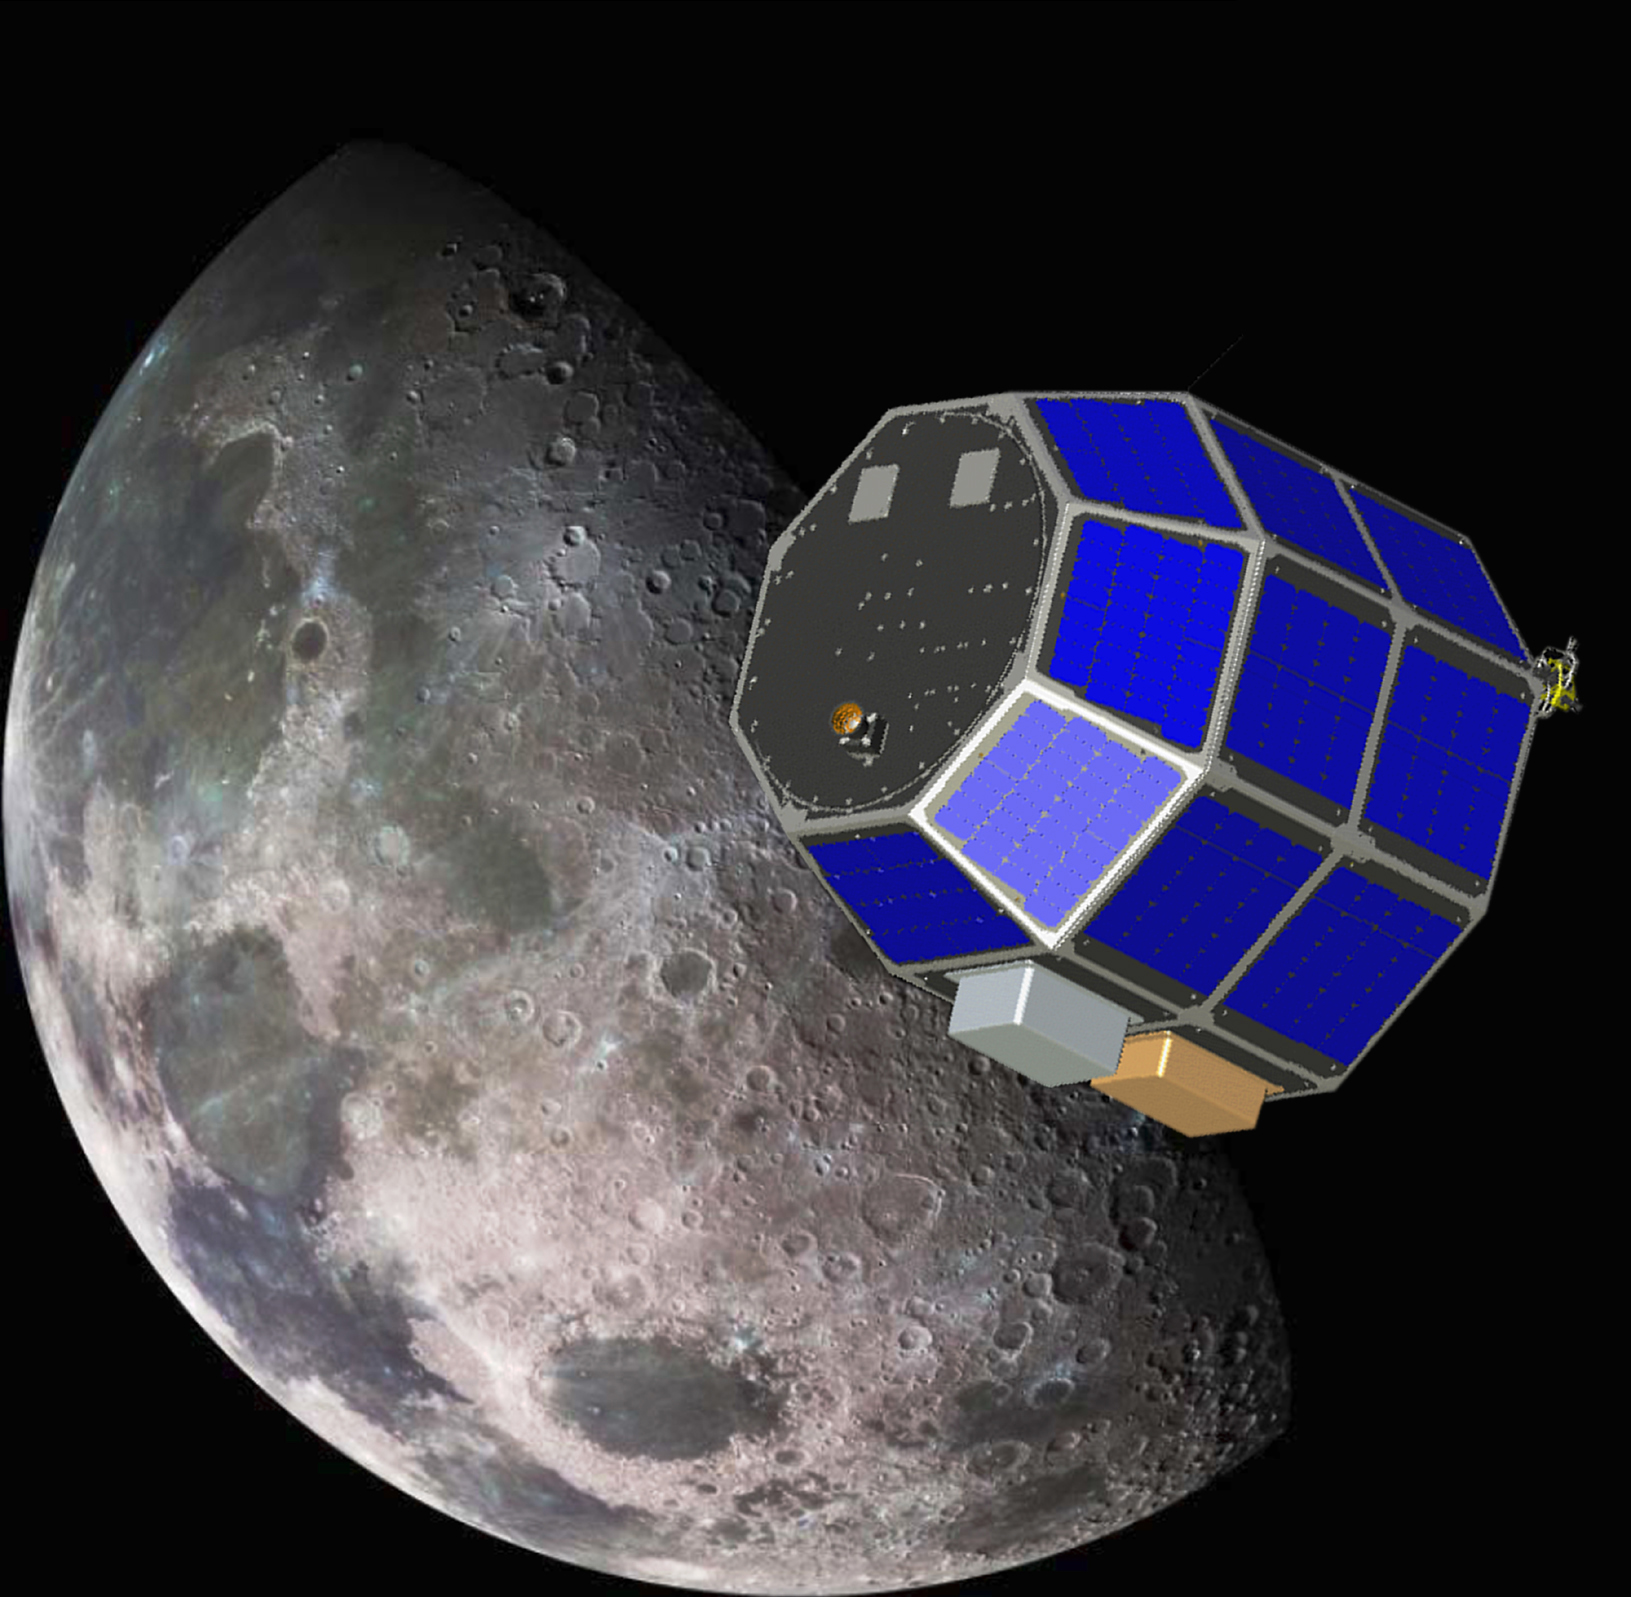 The Lunar Atmosphere and Dust Environment Explorer (LADEE) is designed to study the Moon's thin exosphere and the lunar dust environment.